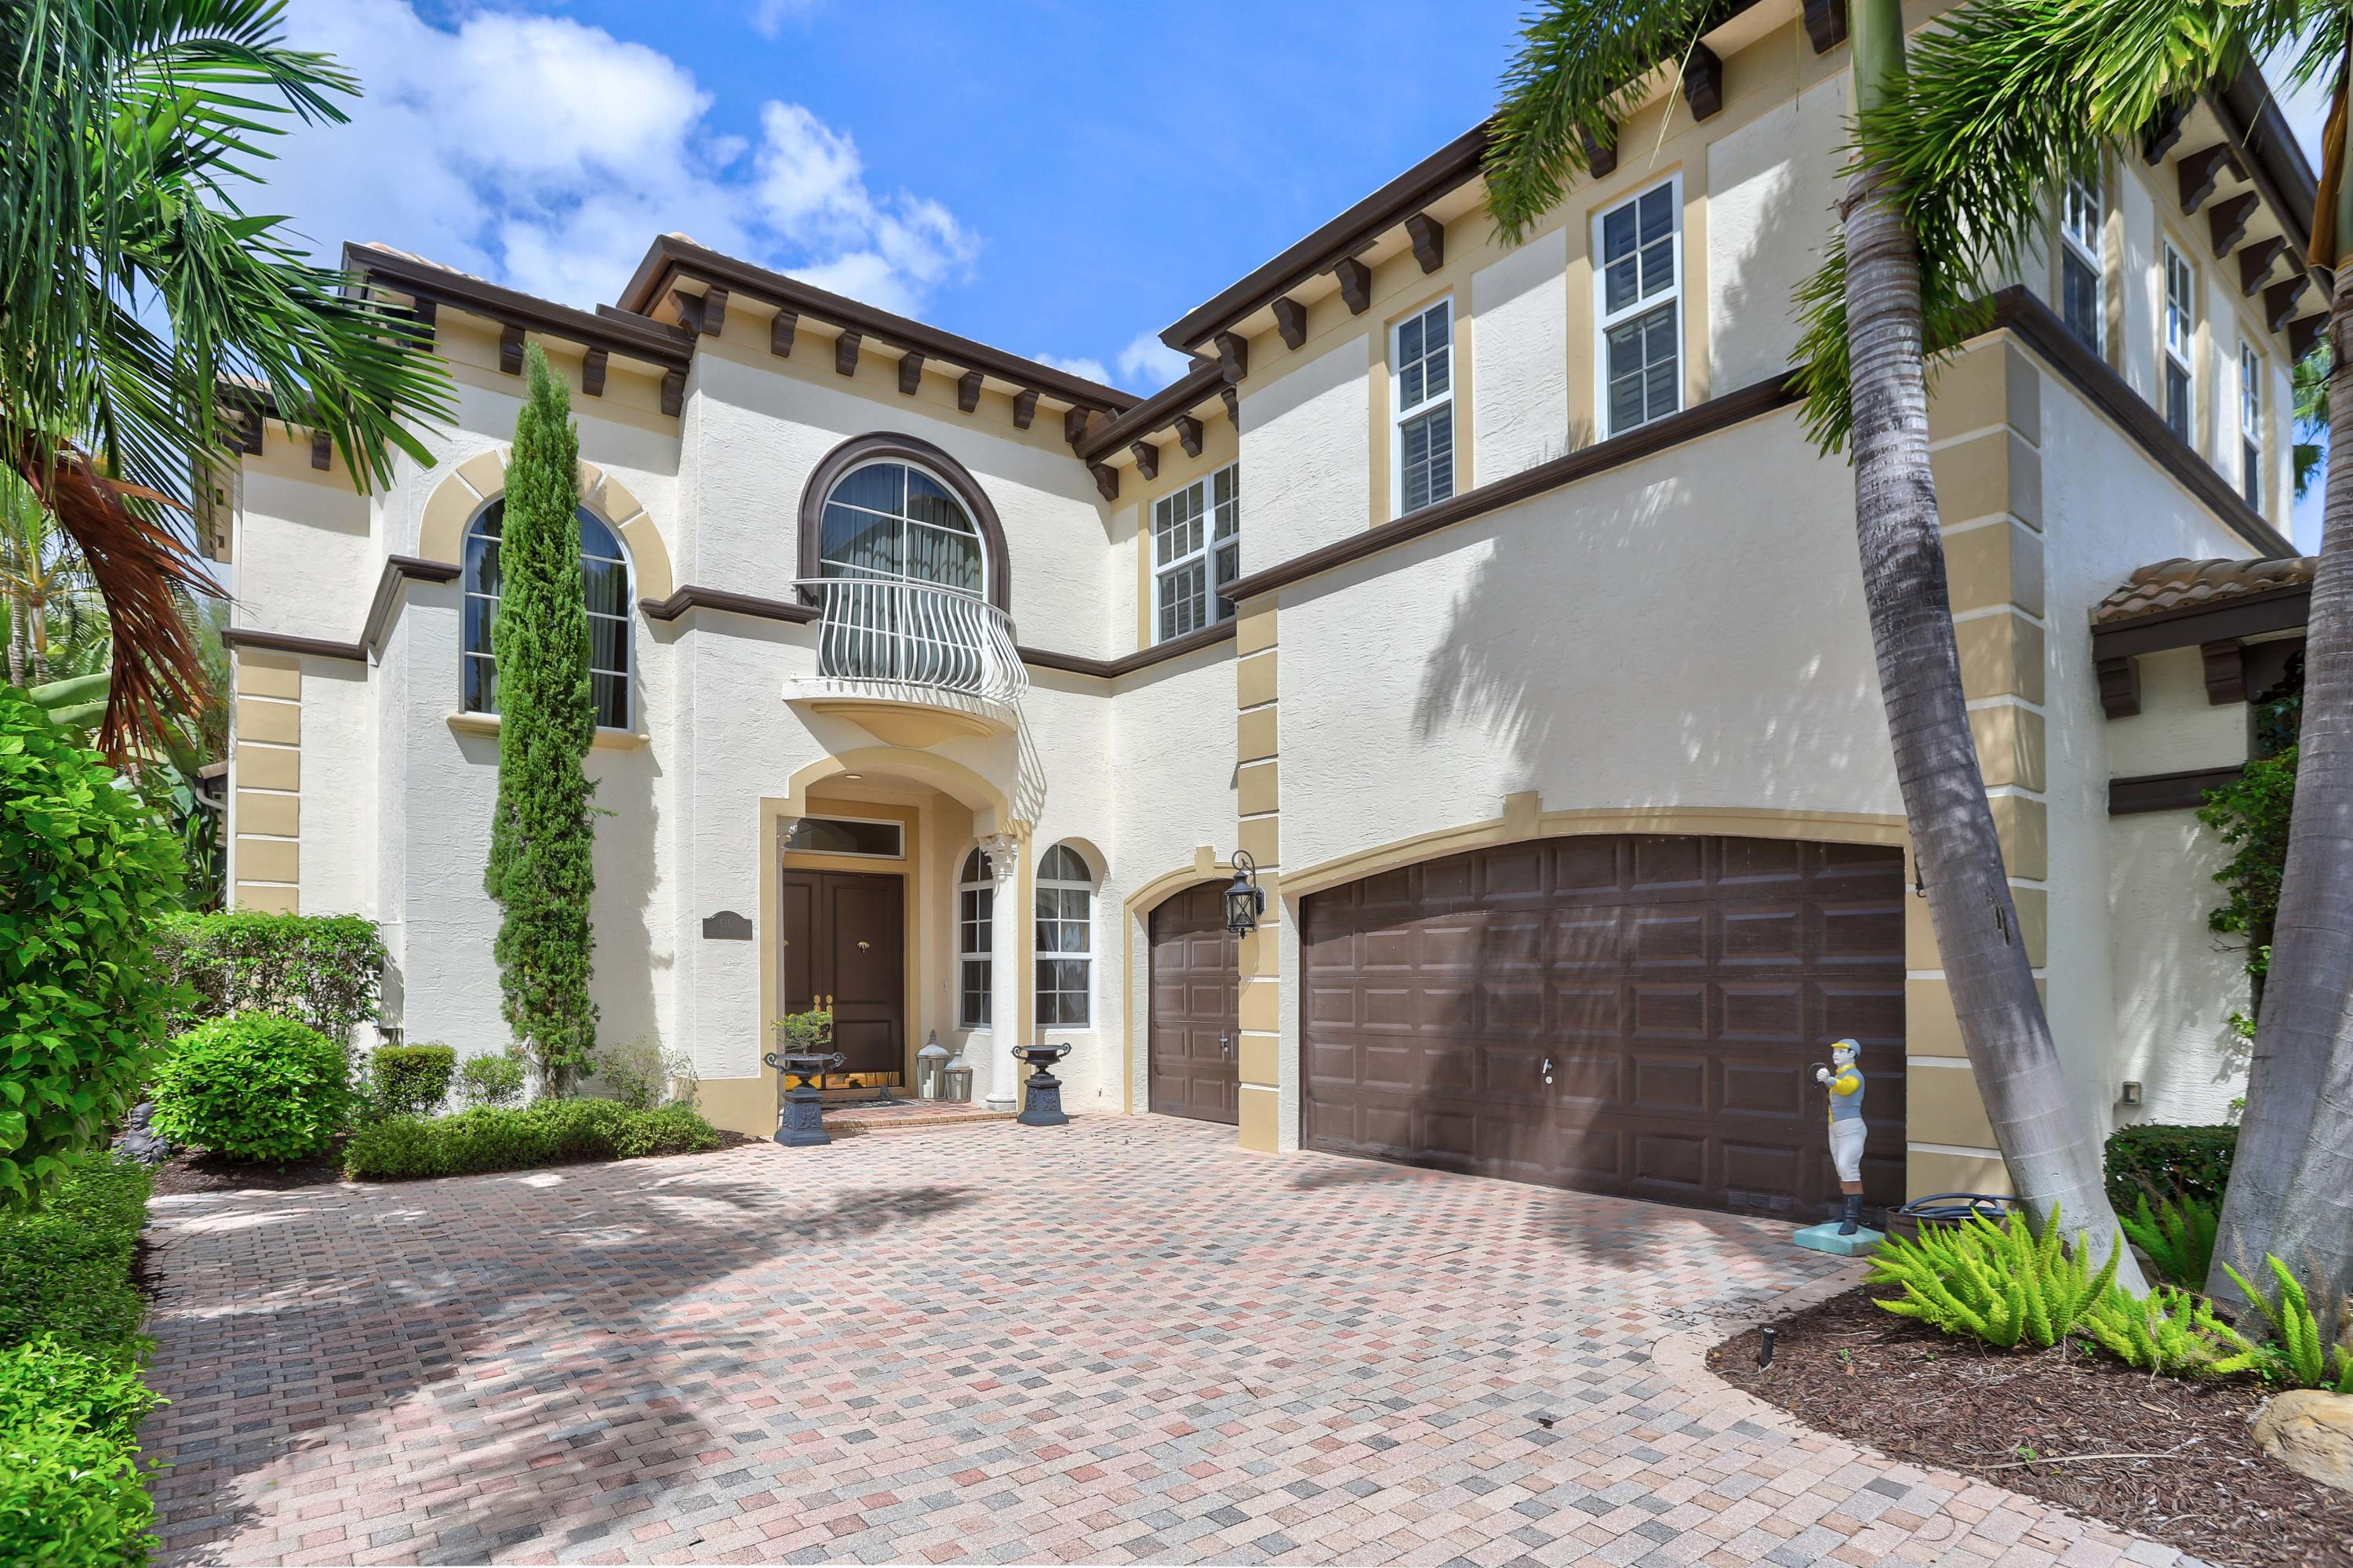 Photo of 6161 Via Venetia N, Delray Beach, FL 33484